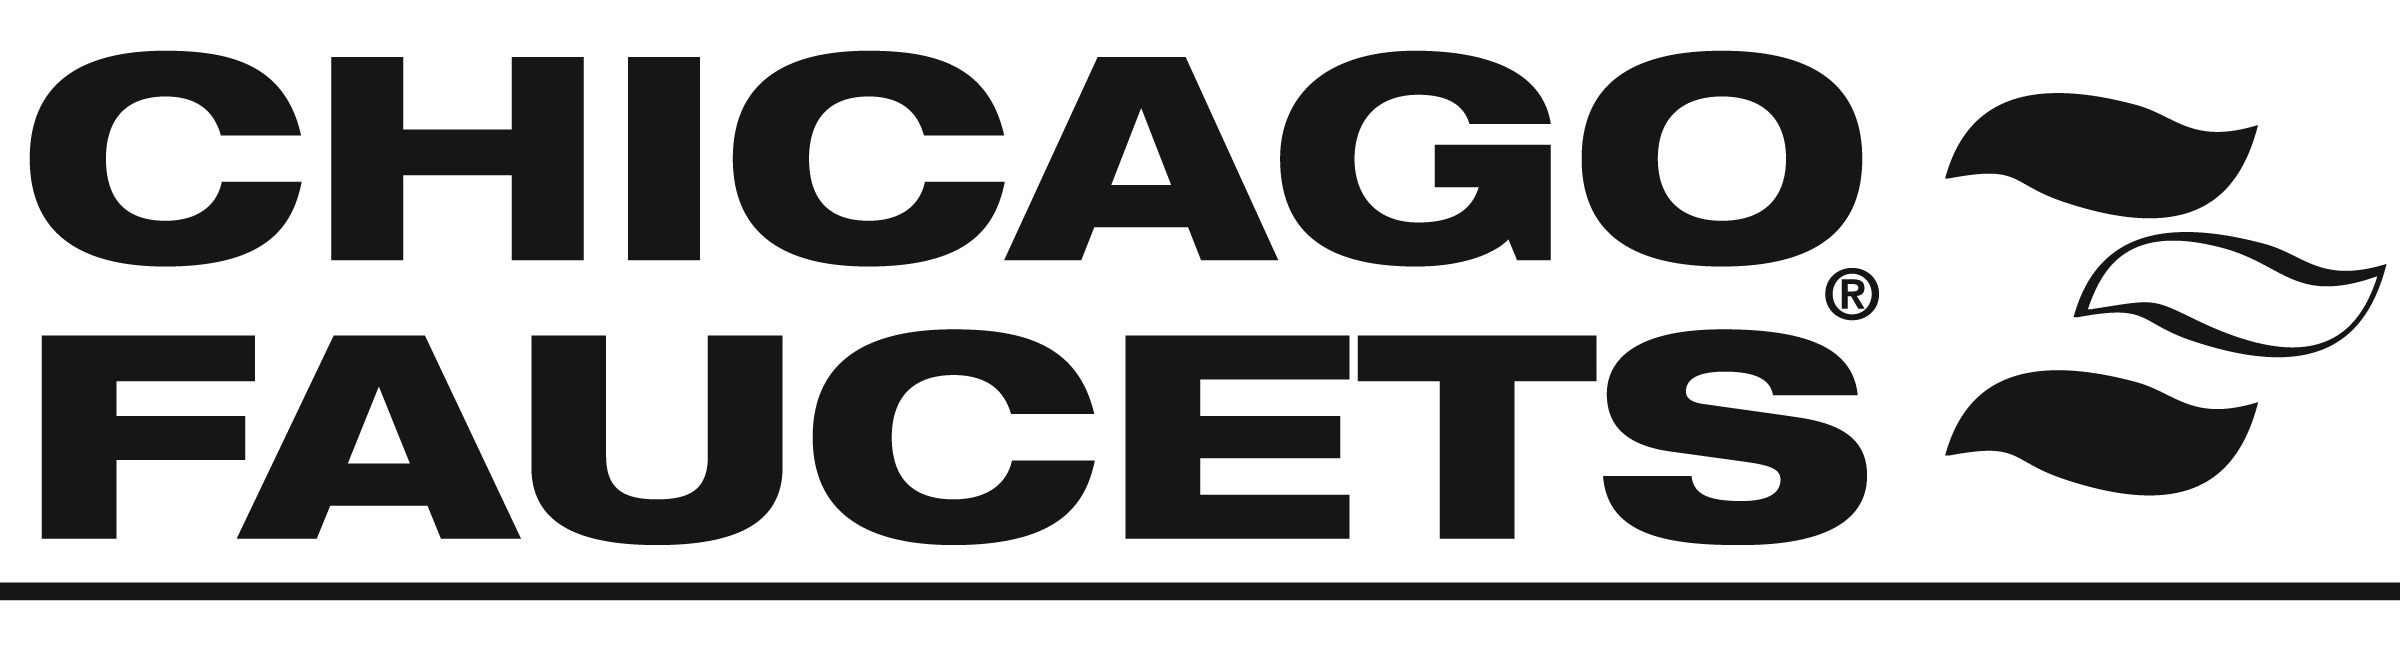 chicago-faucets-logo